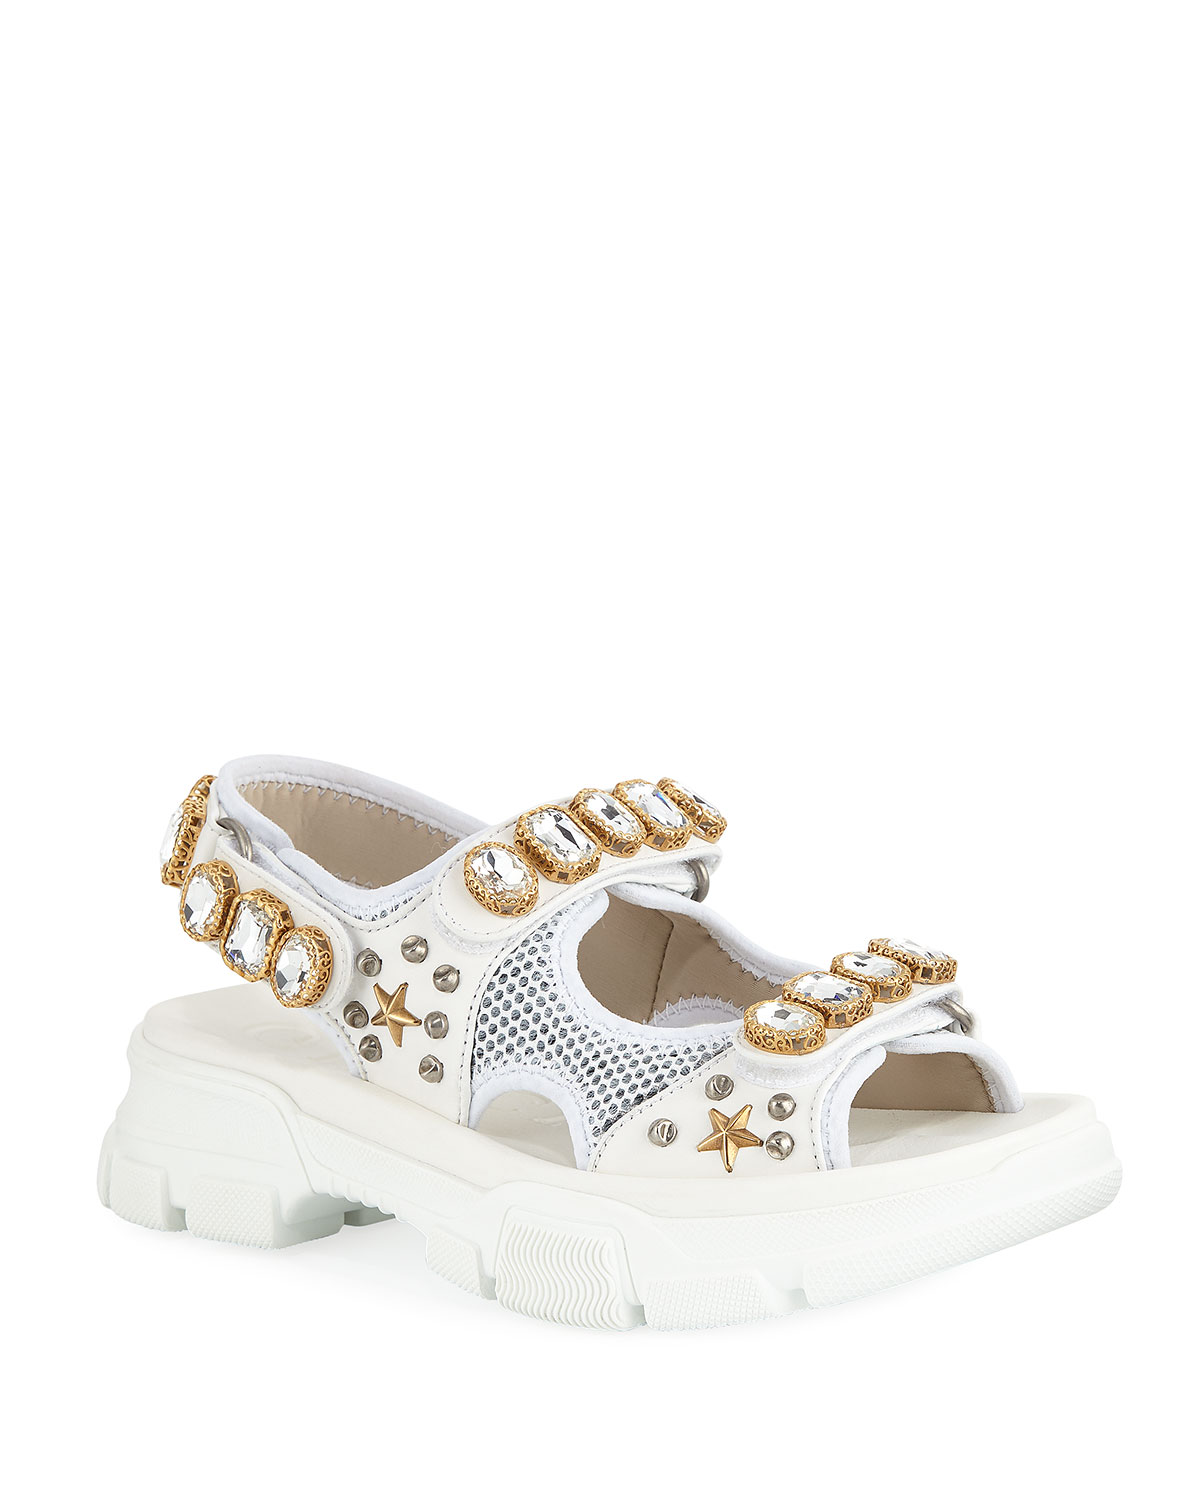 075fc429261c Gucci Metallic and Mesh Embellished Sandals